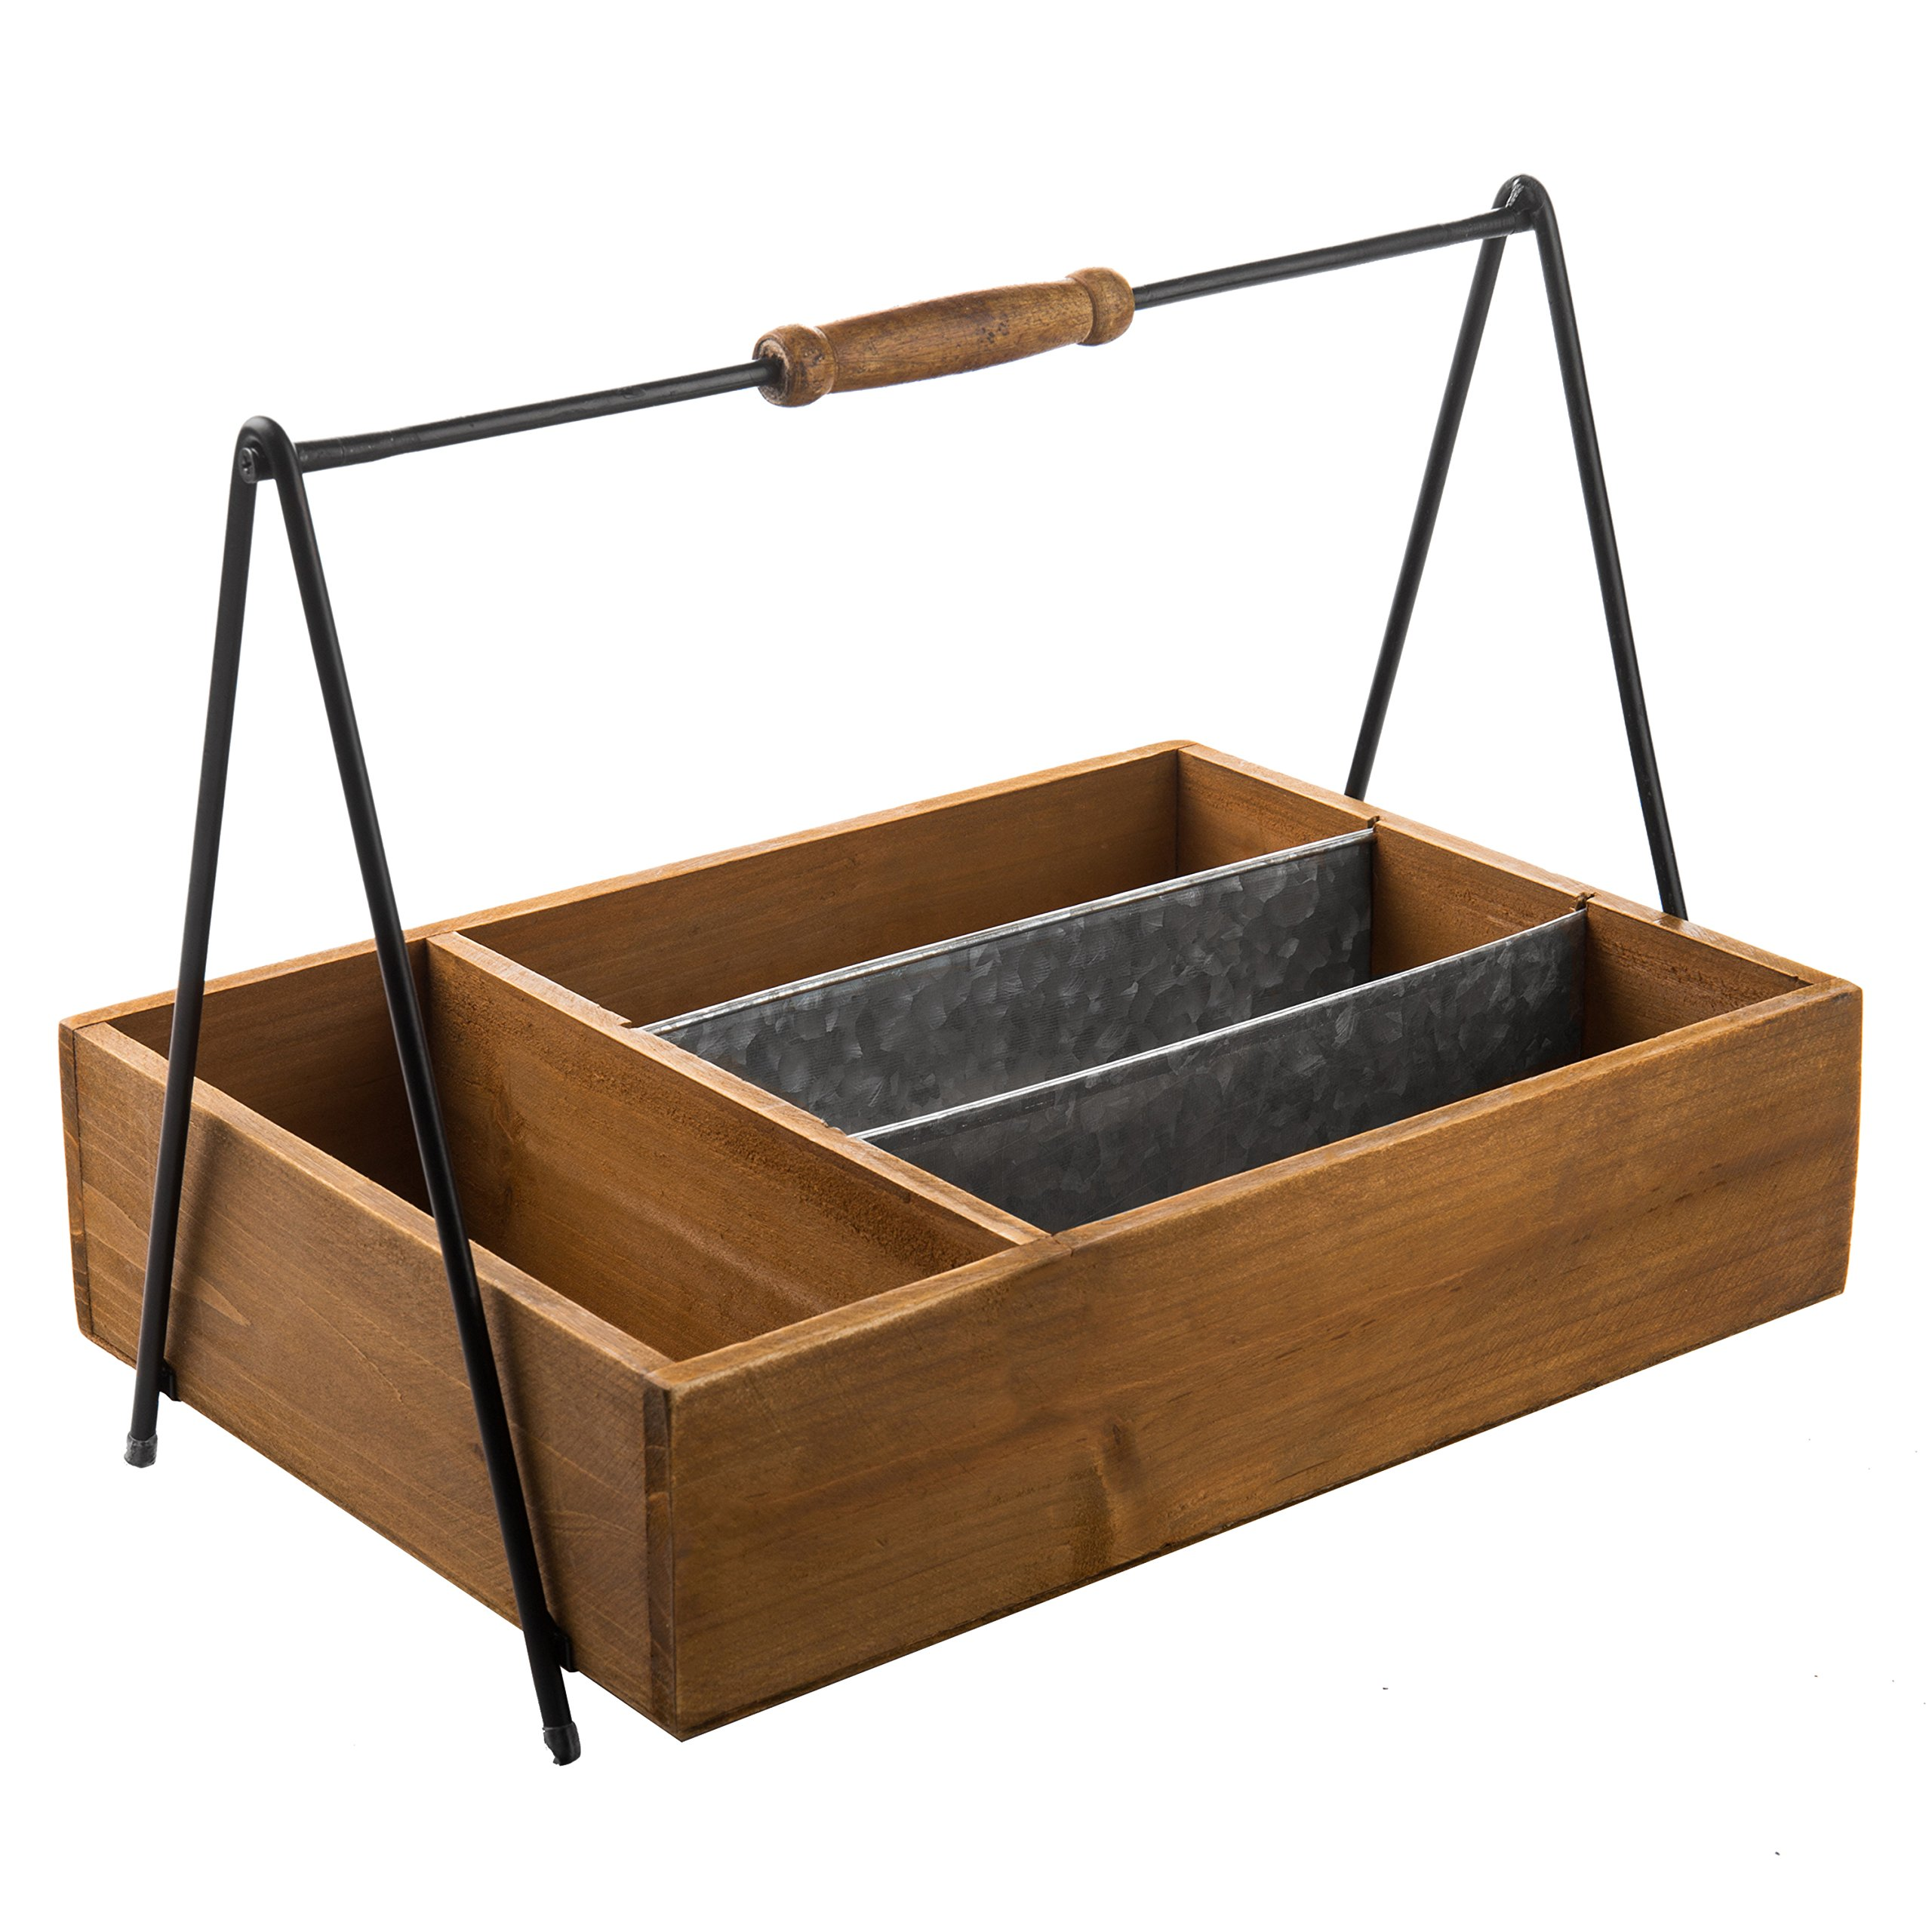 MyGift Rustic Wooden Utensil Caddy with Toolbox-Style Handle